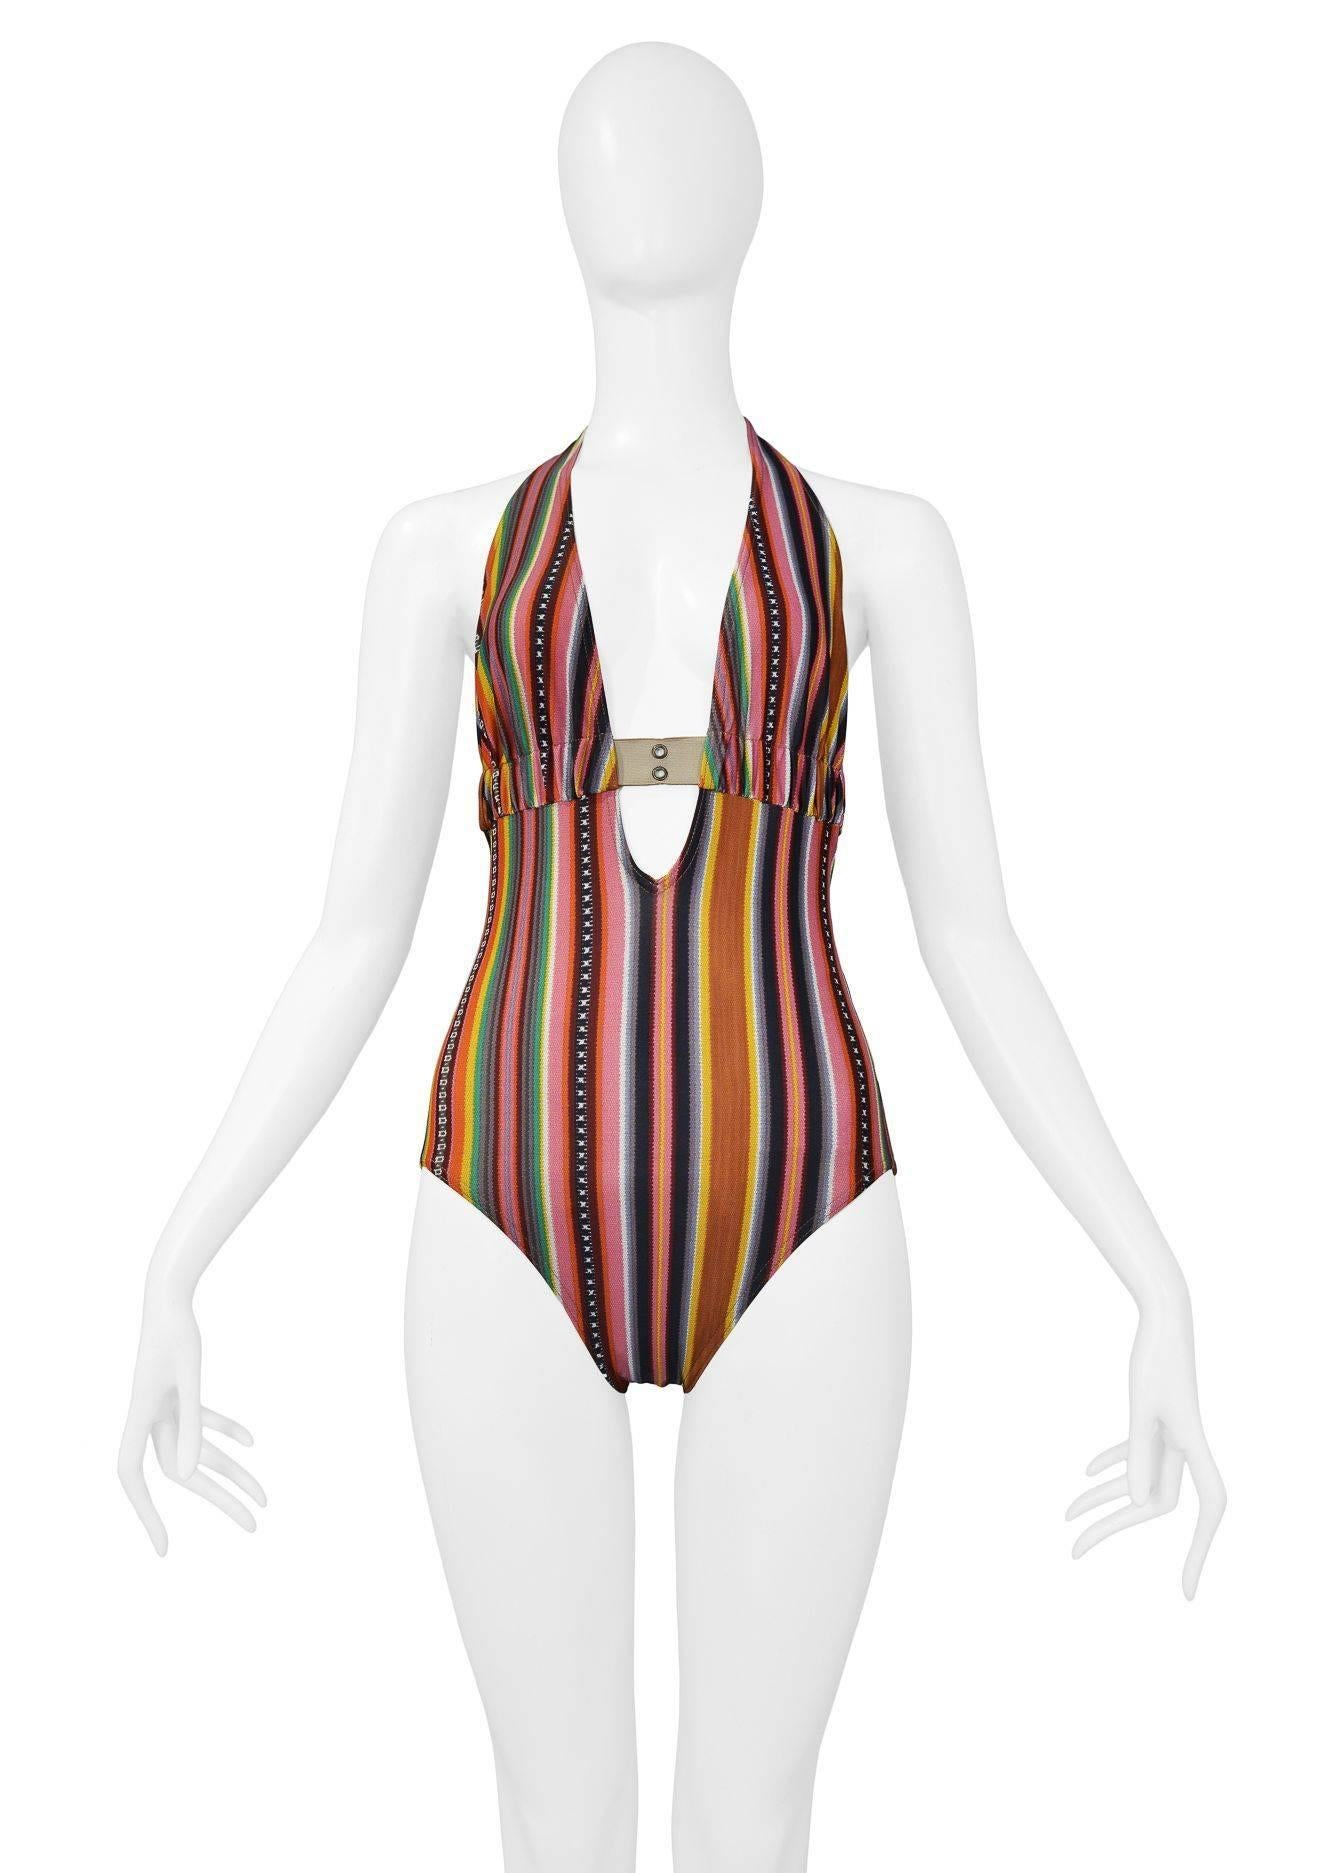 a767cd28d5 Christian Dior Stripe Cargo Strap Swim Suit 2002 For Sale at 1stdibs